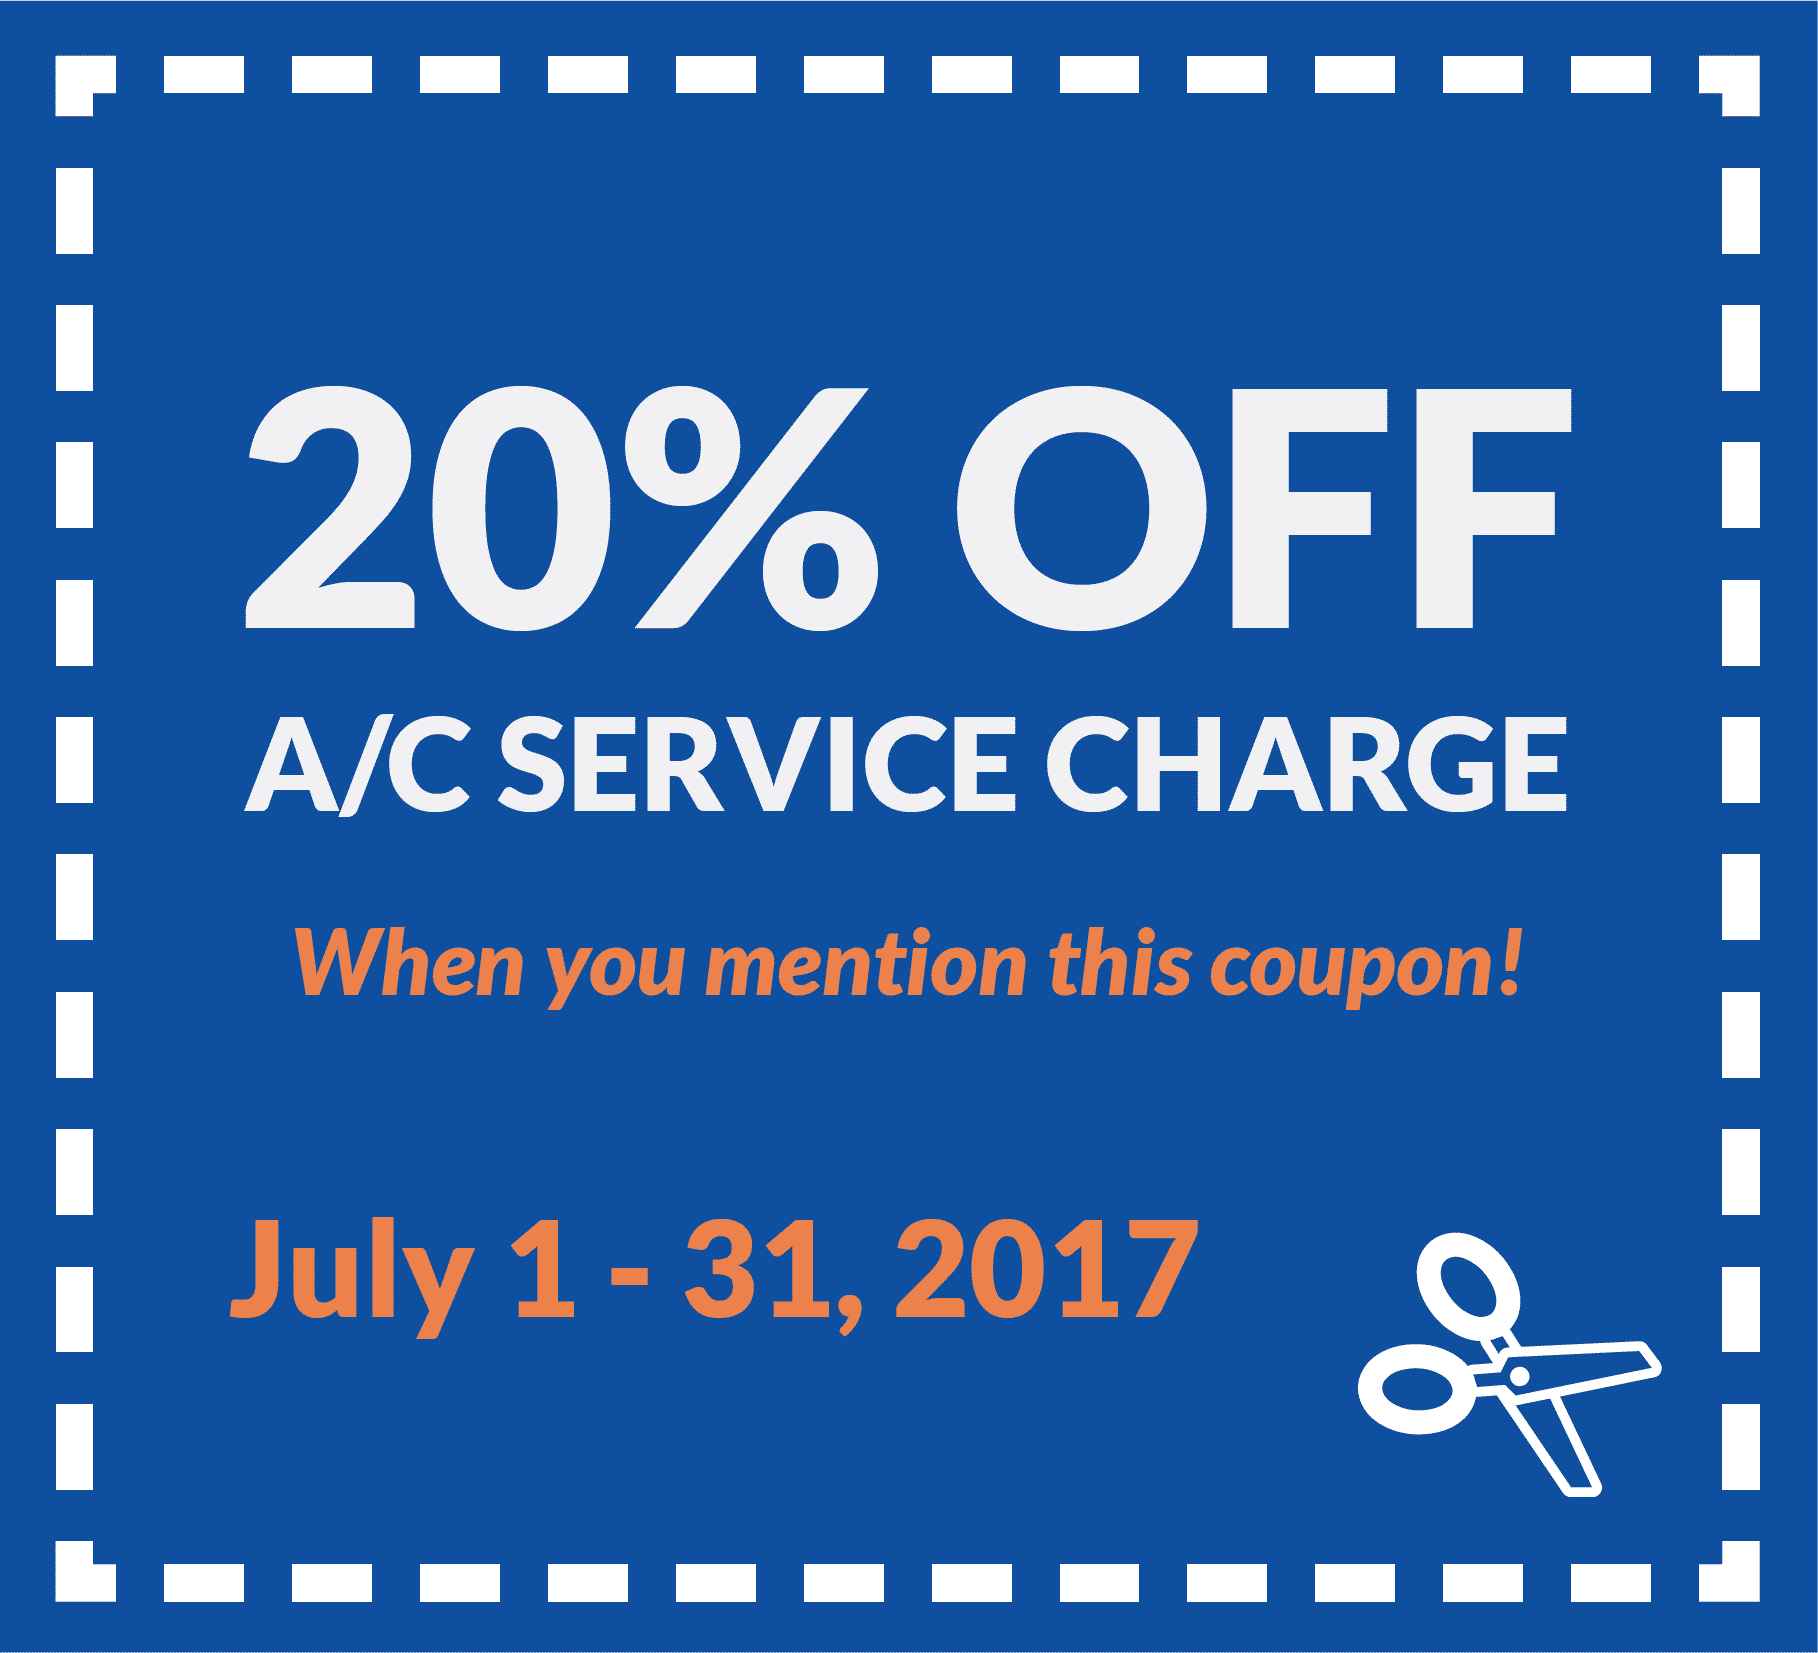 Coupon for 20% off A/C service charge, when you mention this coupon. Valid from July1 1 to 31, 2017.